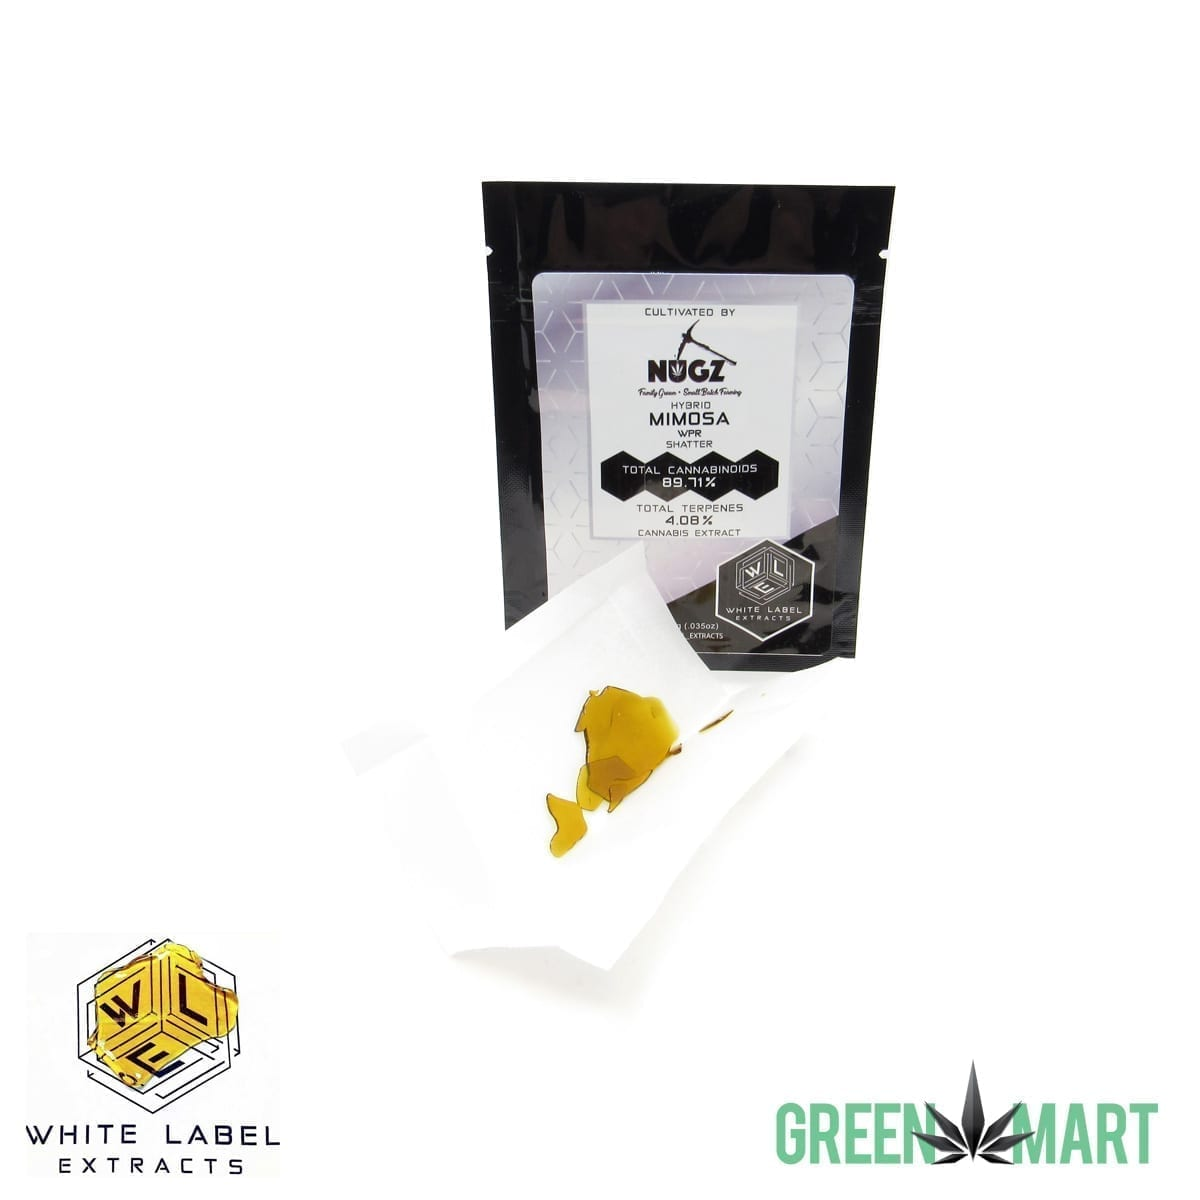 White Label Extracts - Mimosa